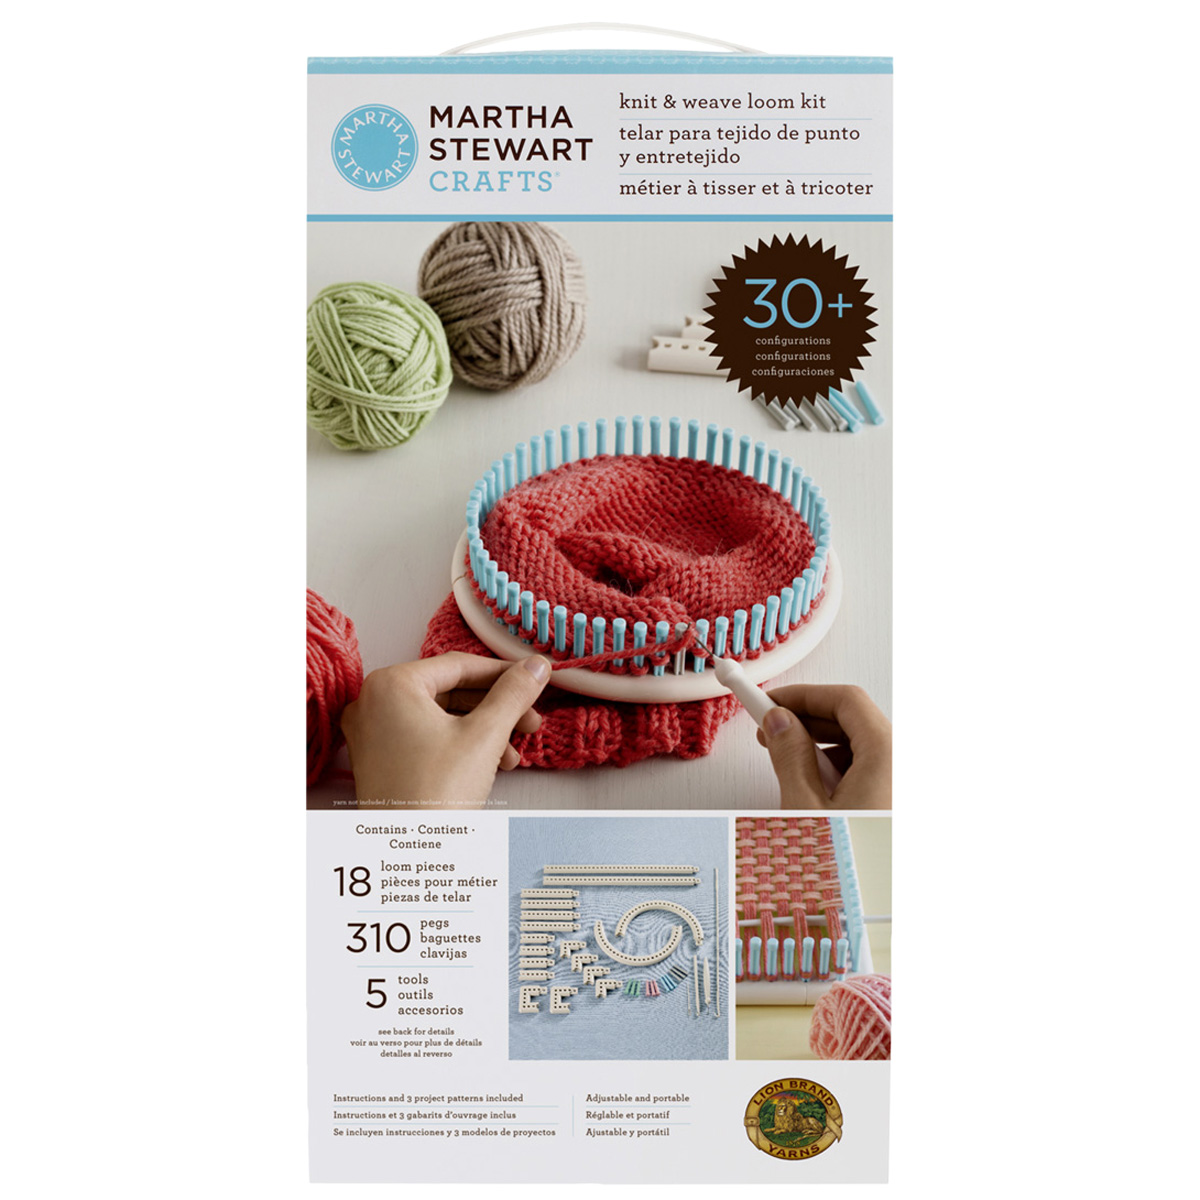 Knitting Loom Kit : Martha stewart crafts knit weave loom kit